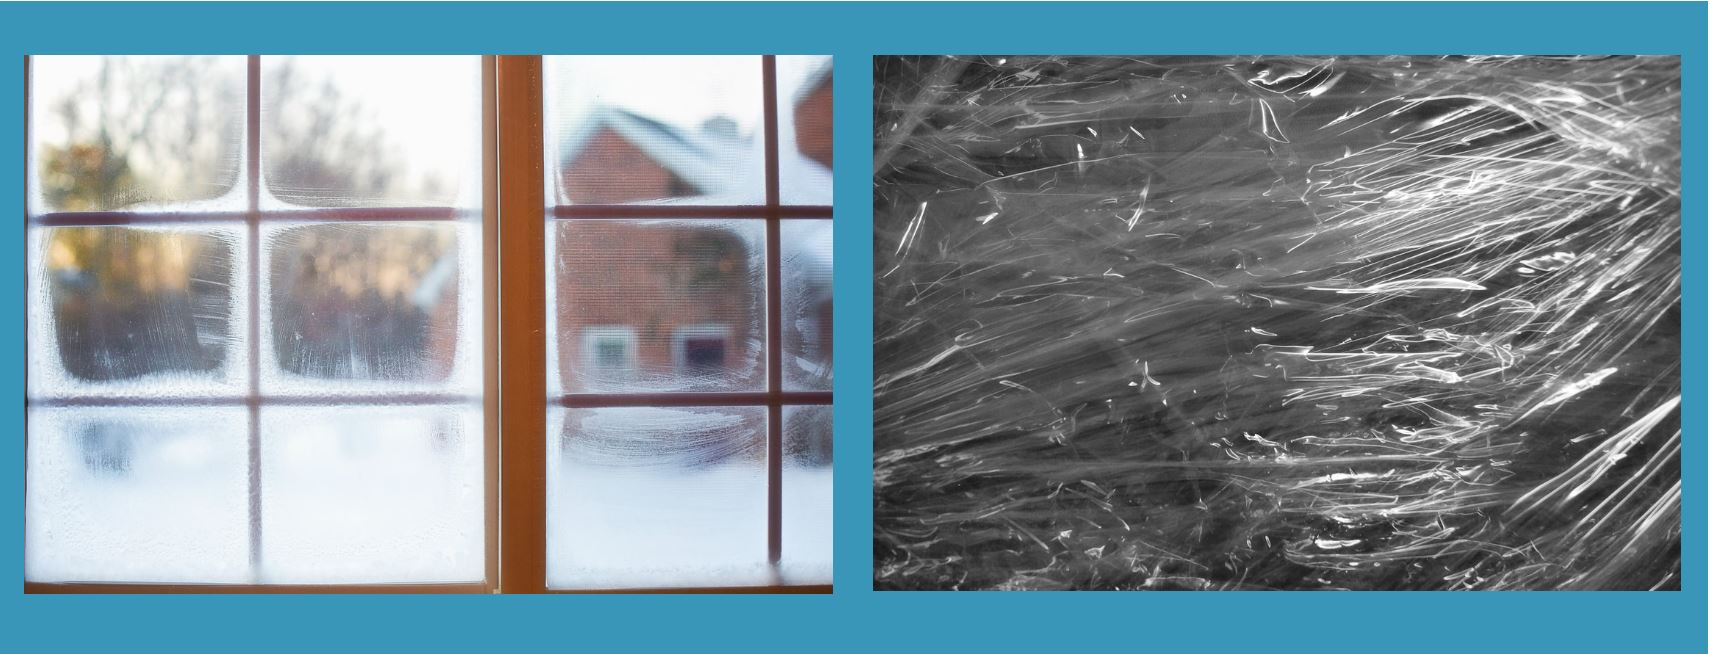 Two pictures side by side on a blue background, the first shows a window with six panes on each side of a divider that is fogged and showing snow outside, the next shows plastic wrap used for weather sealing